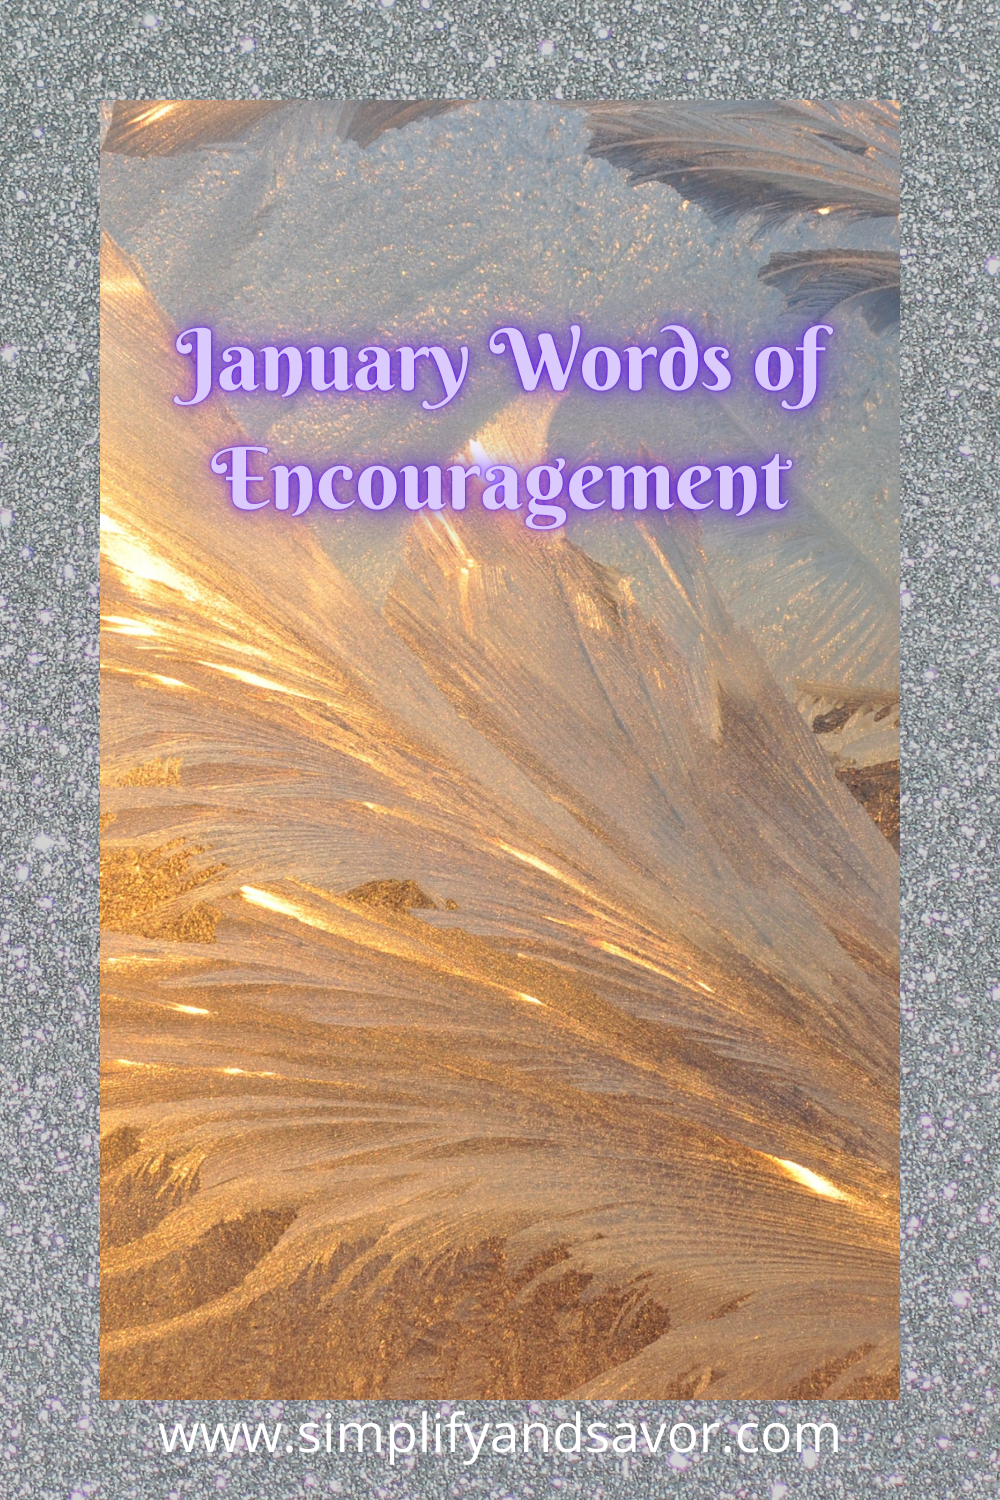 January Words of Encouragement